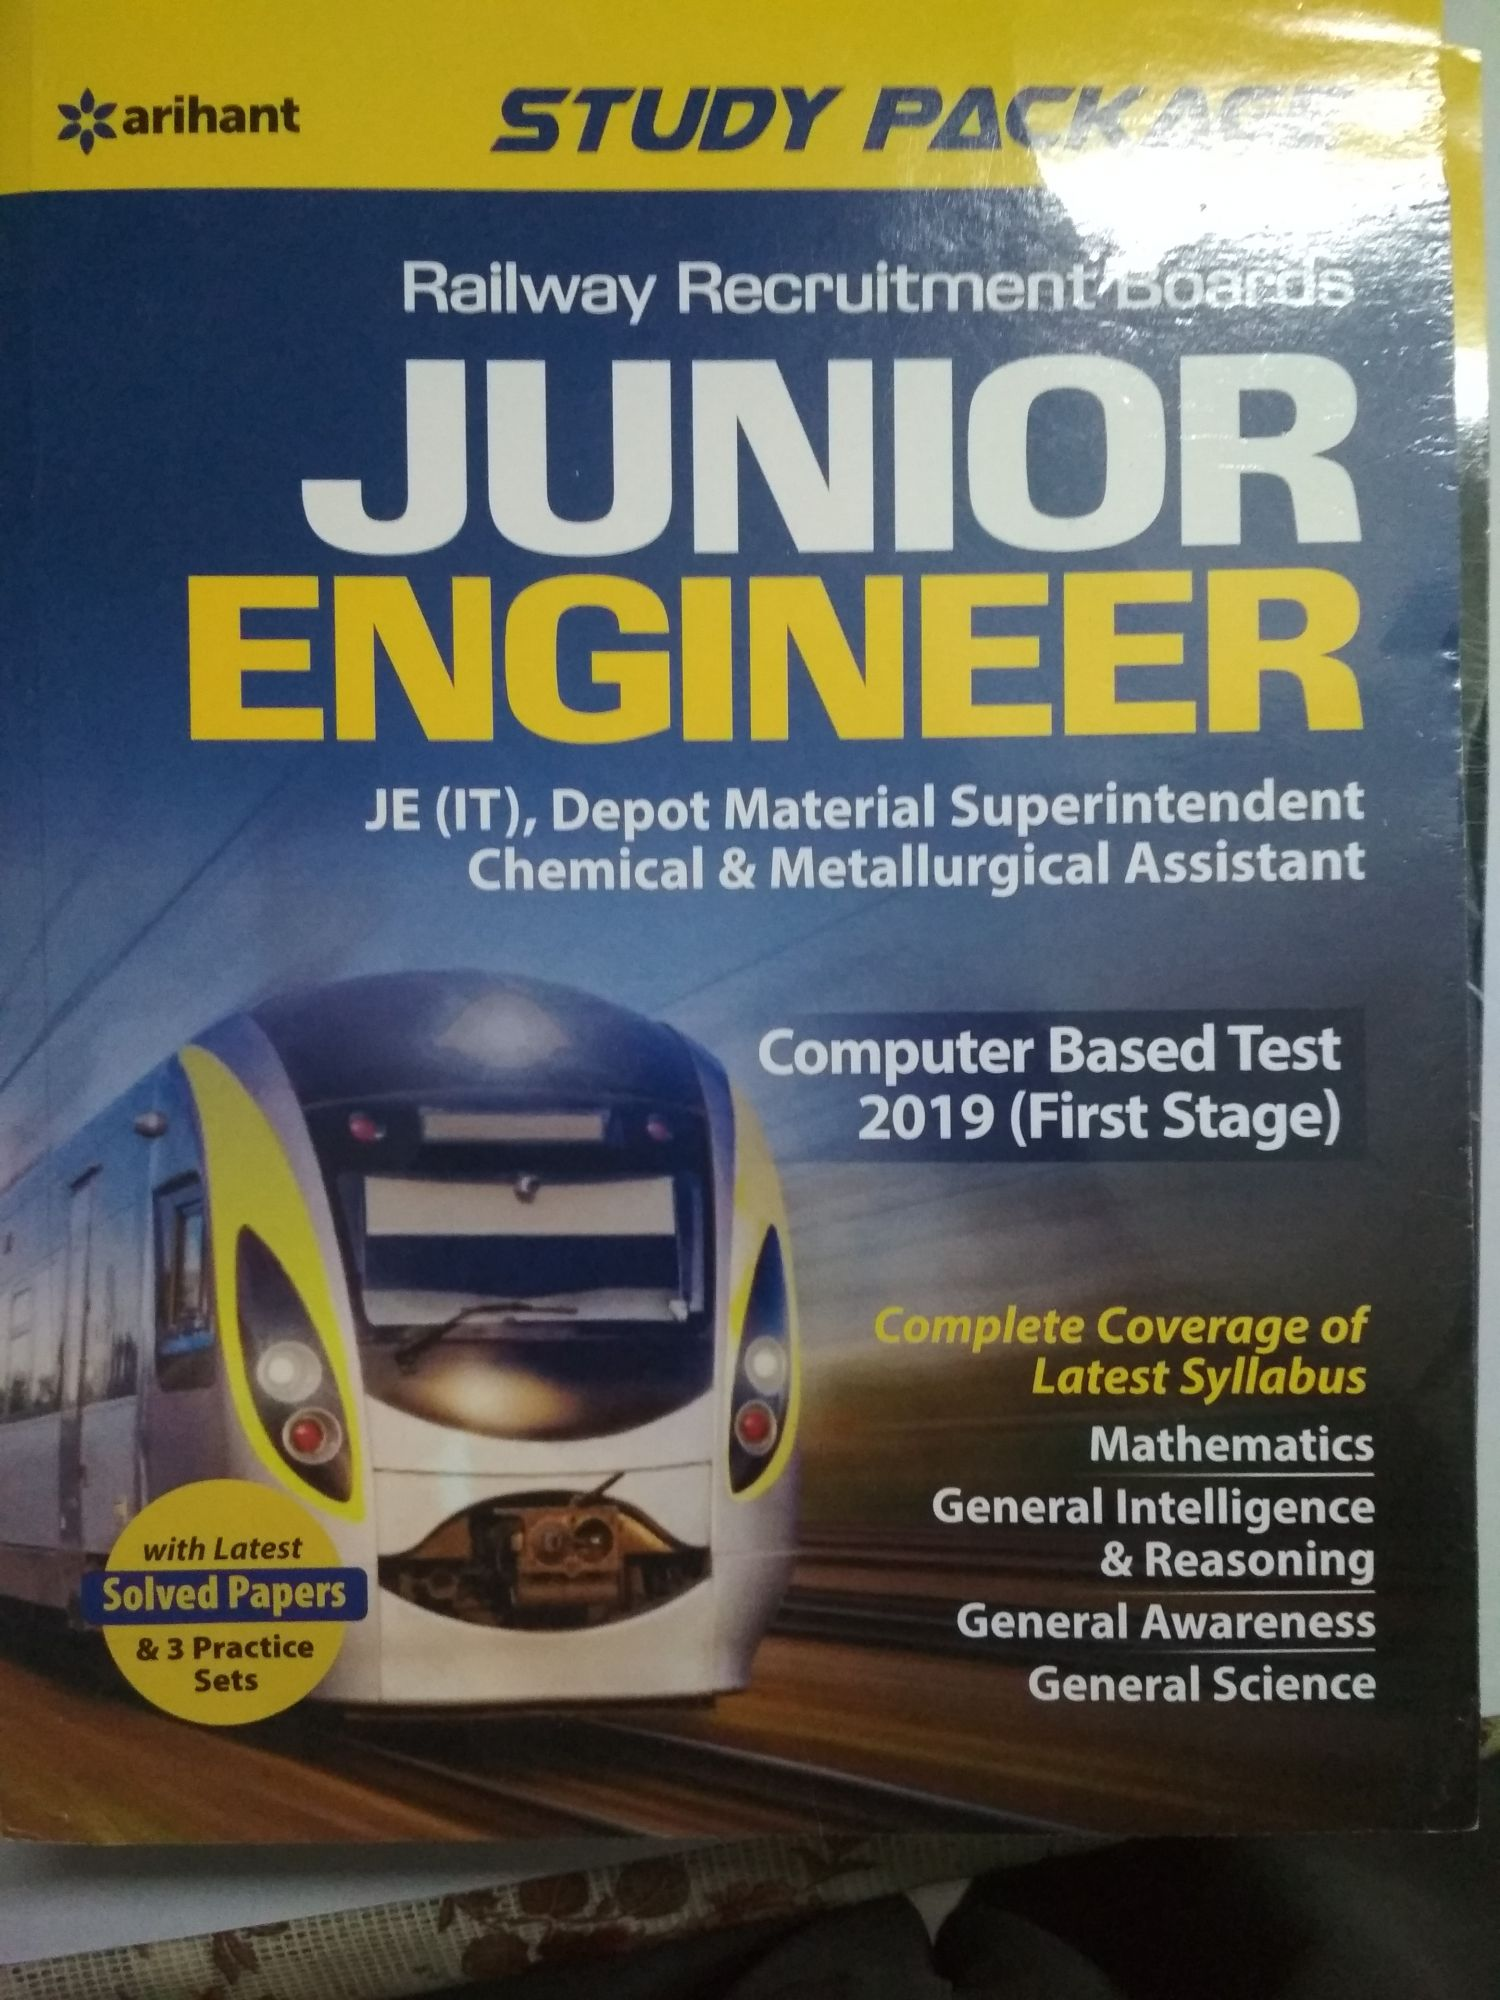 Railway Recruitment Boards Junior Engineer By Arihant